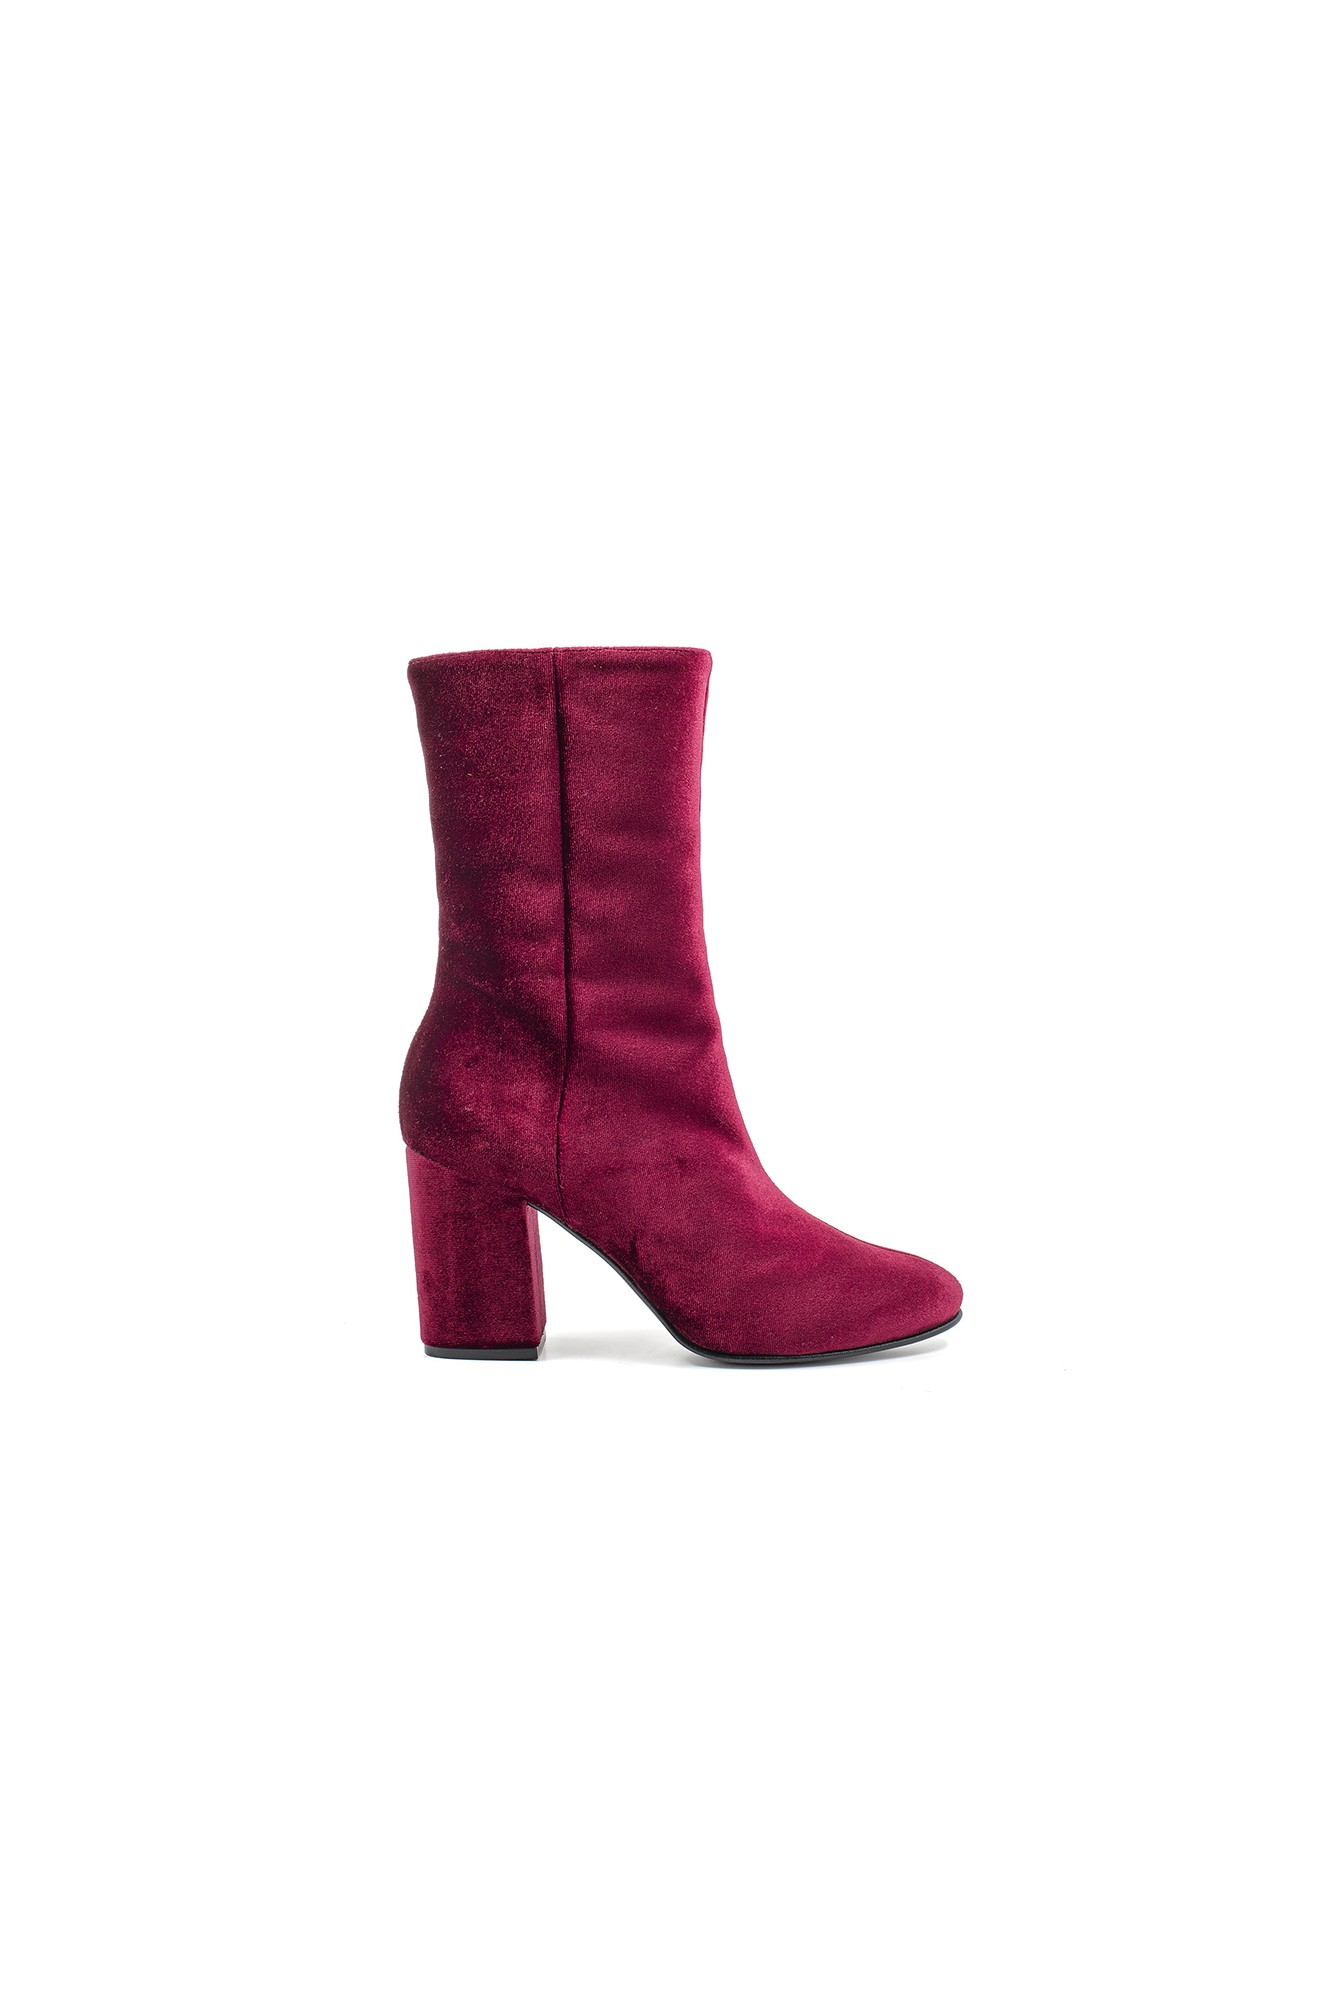 MOCCA BURGUNDY BOOTS